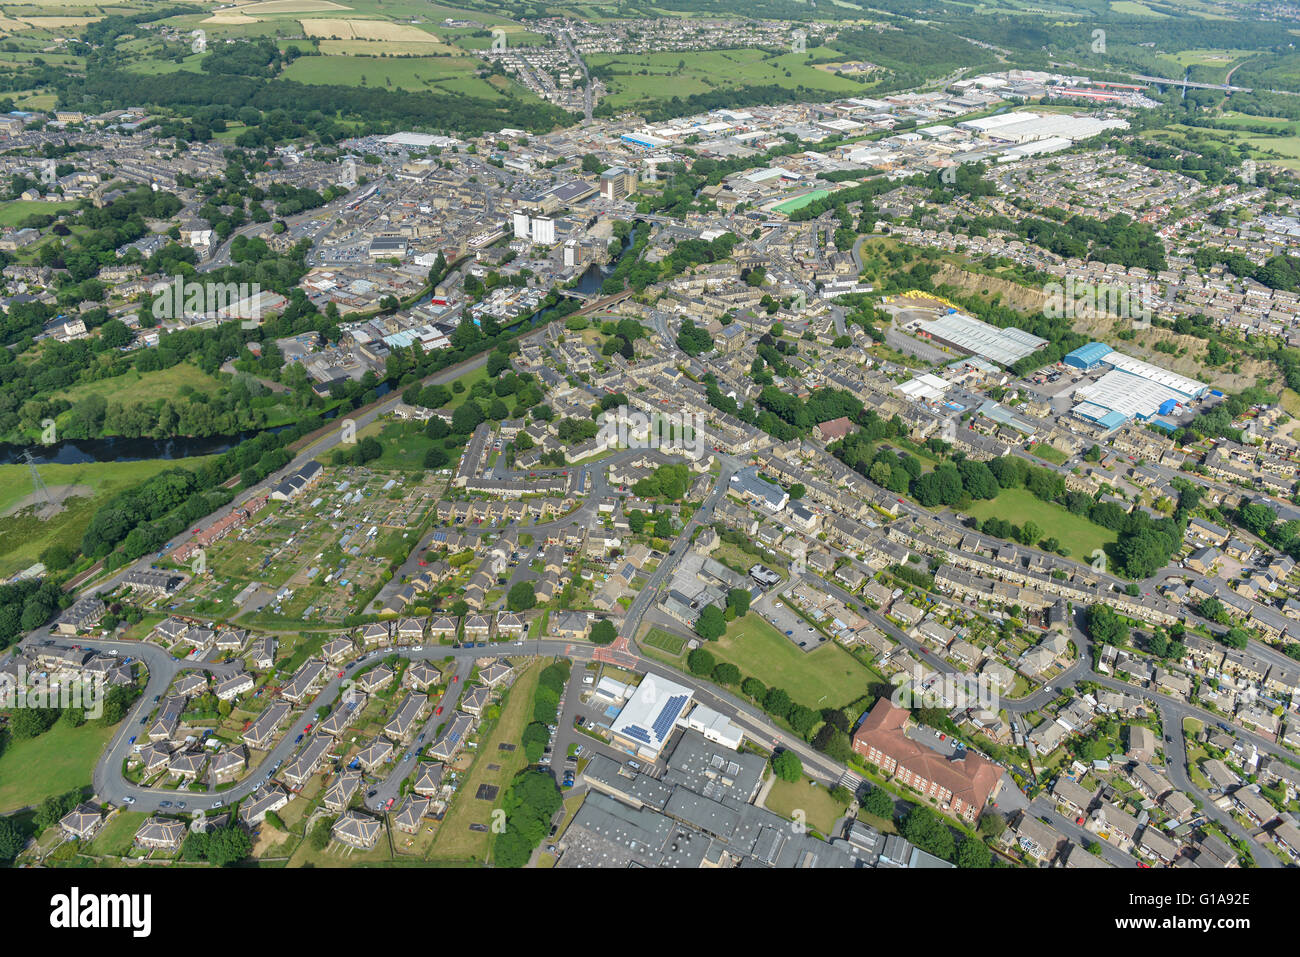 General views of the West Yorkshire town of Brighouse - Stock Image